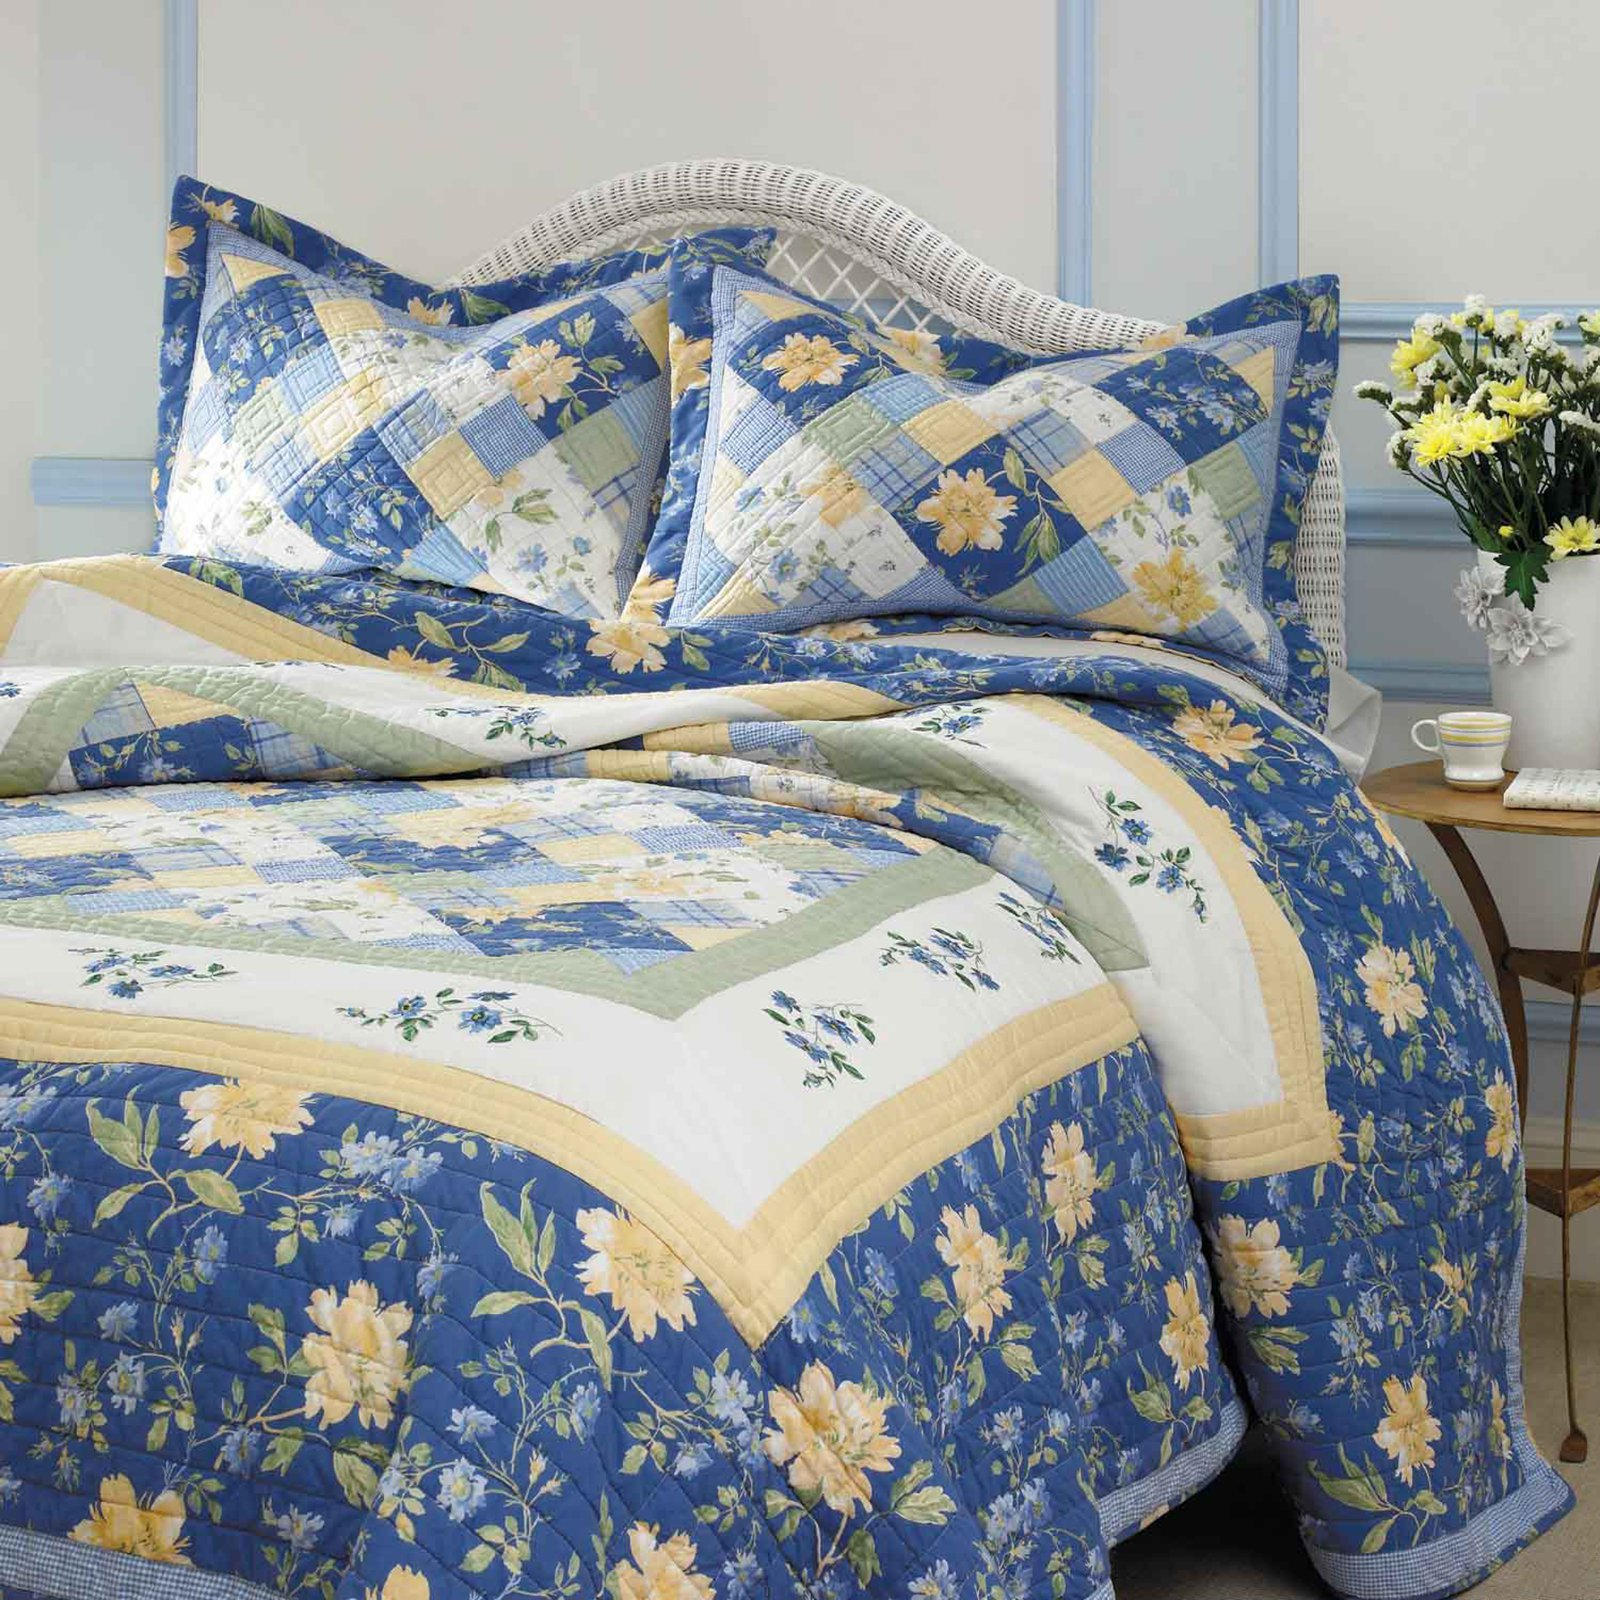 charming Laura Ashley bedding in blue and flowers motif for bedding ideas